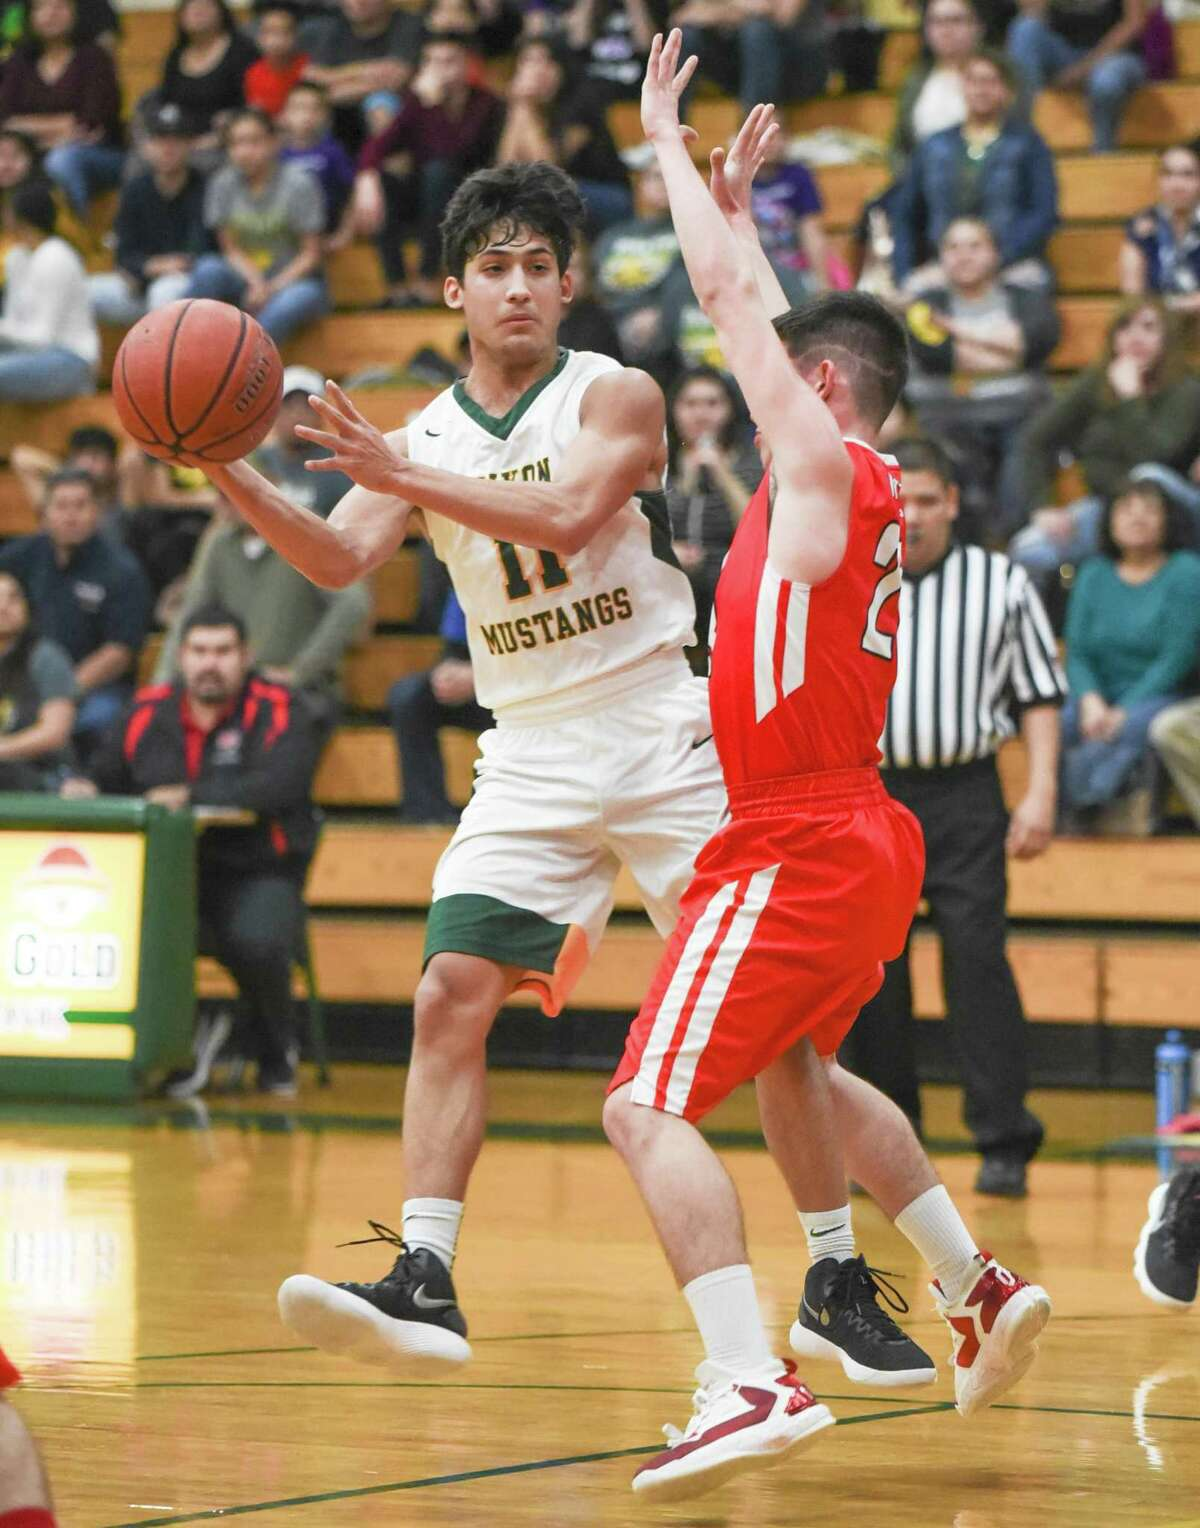 Nixon (25-5, 11-0 District 31-5A), ranked No. 16 in Texas 5A, punched its ticket to the district playoffs with last Friday's home victory over Rio Grande City.